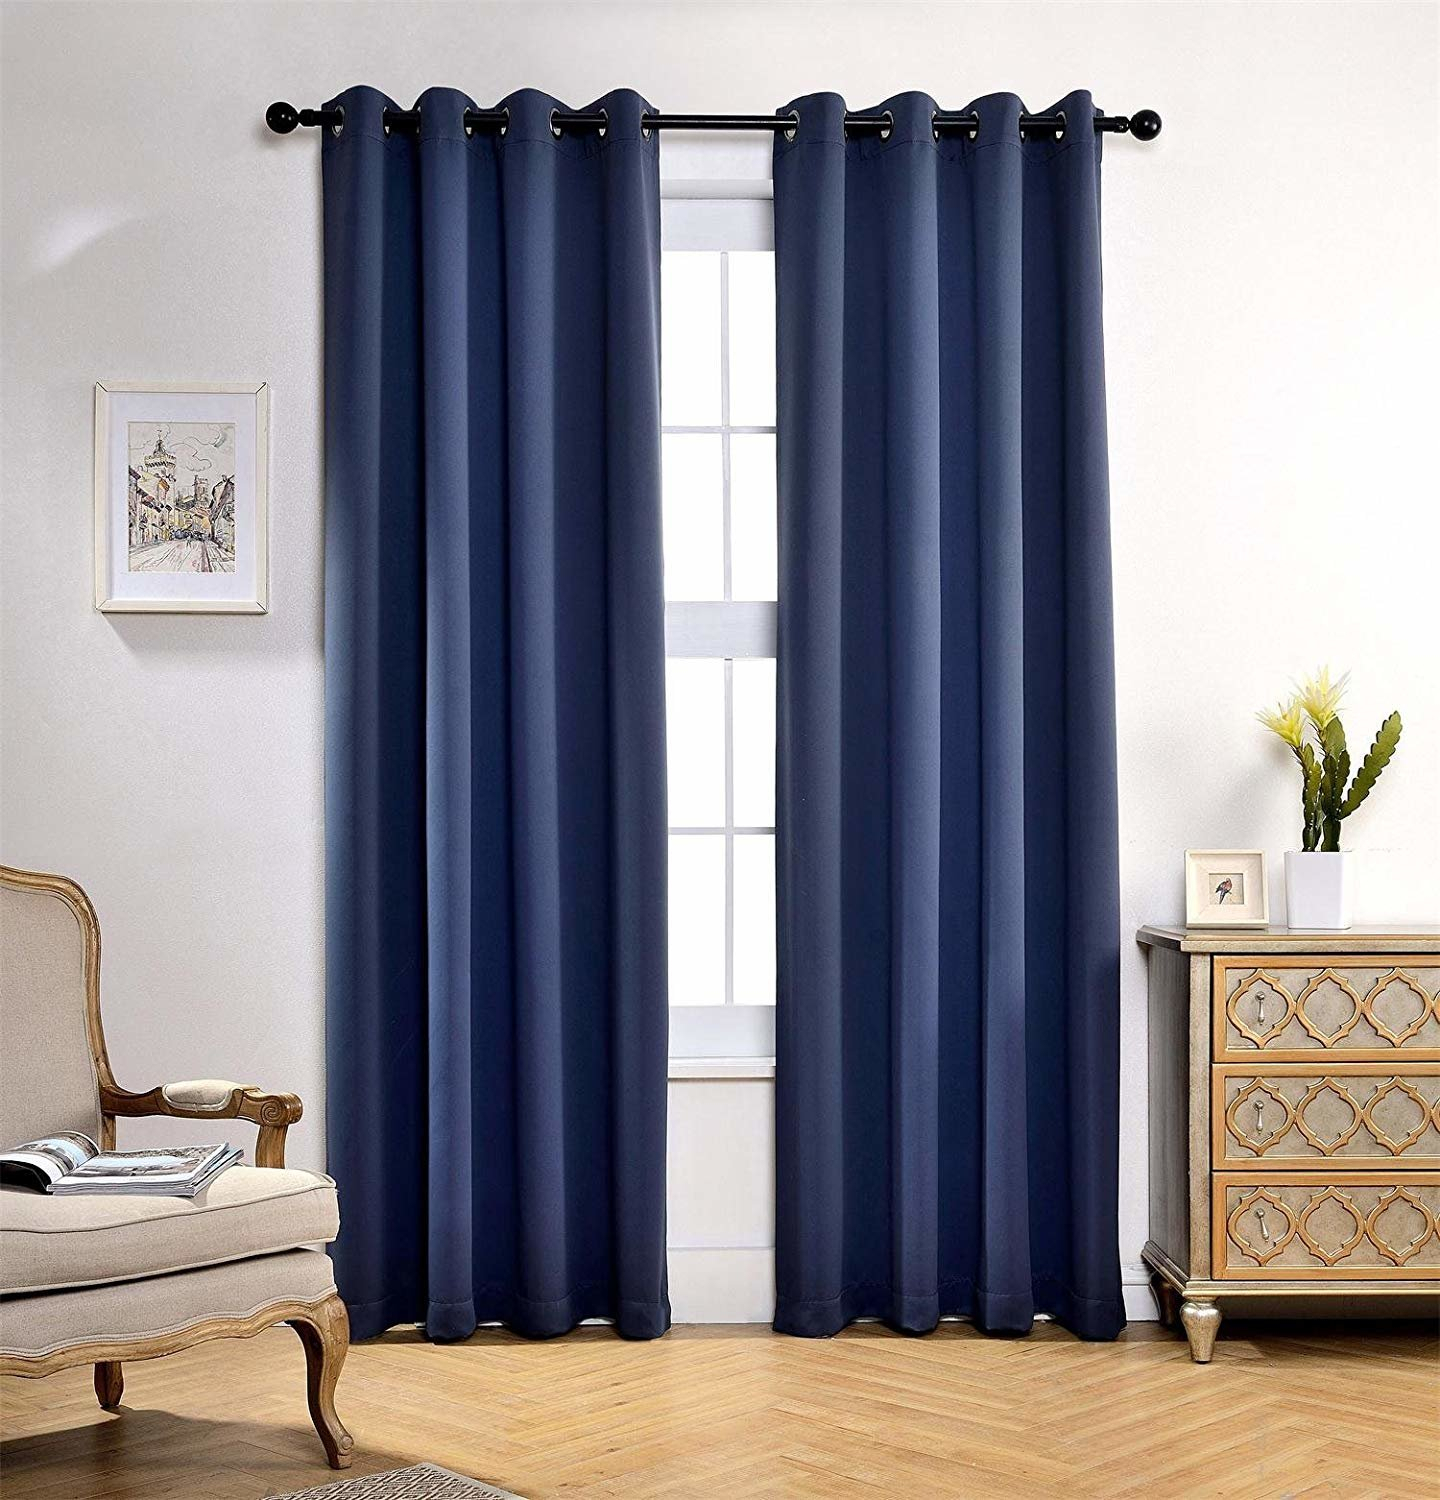 The 5 Best Blackout Curtains, According To Reviewers | Bob Vila For All Seasons Blackout Window Curtains (View 10 of 20)